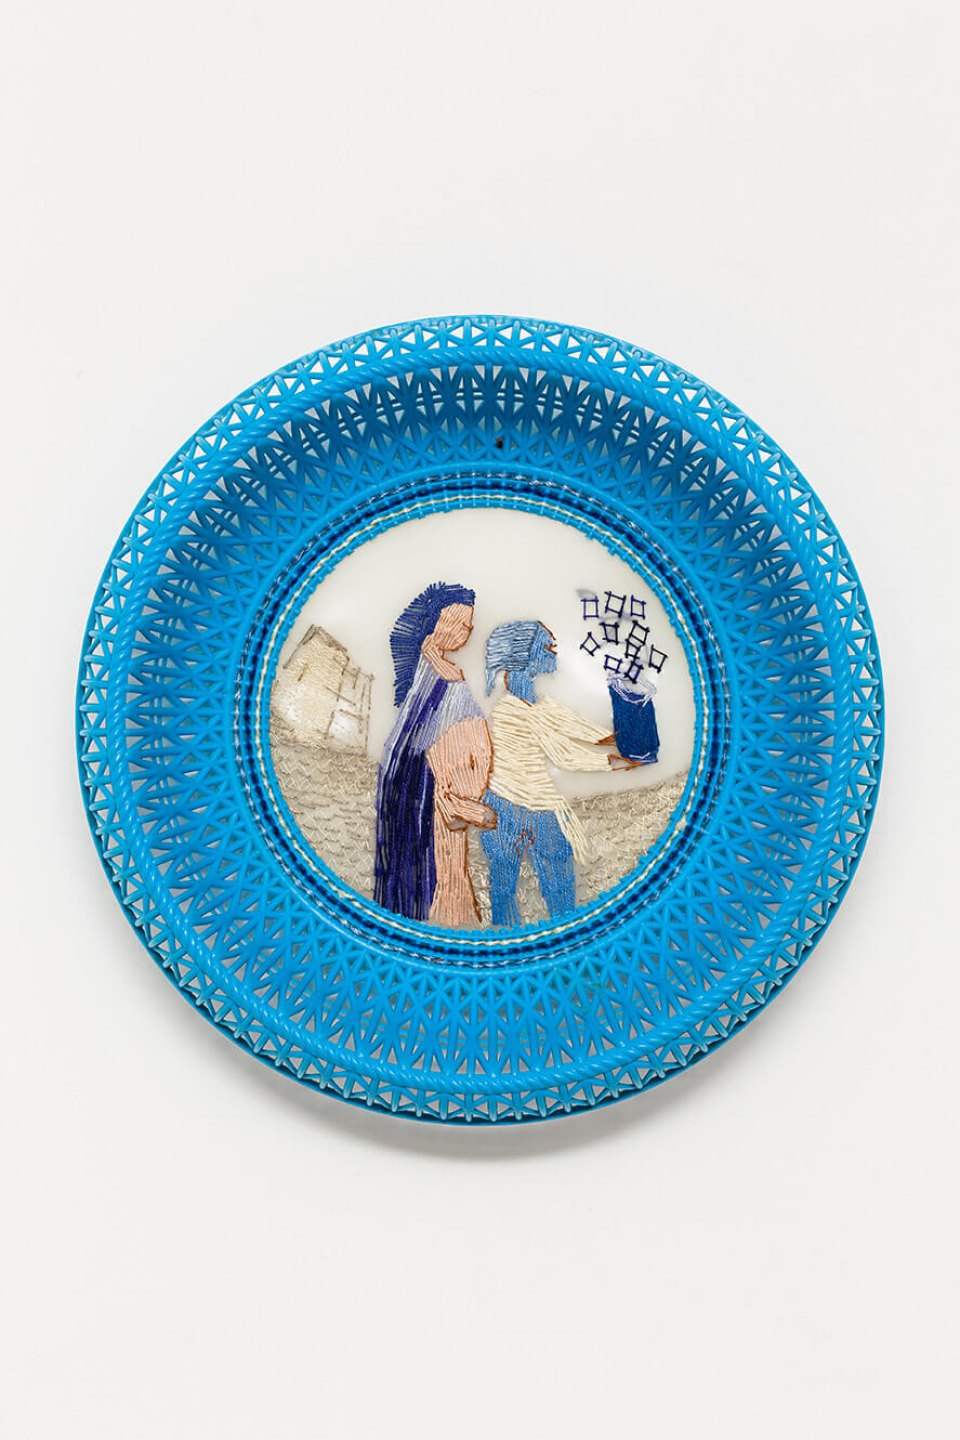 f.marquespeteado, <em>Boquete mediterrâneo, from Wedgwood erótica series,</em> 2009, plastic basket, hand and machine embroidery PVC, 6 × 27 cm ø - Mendes Wood DM